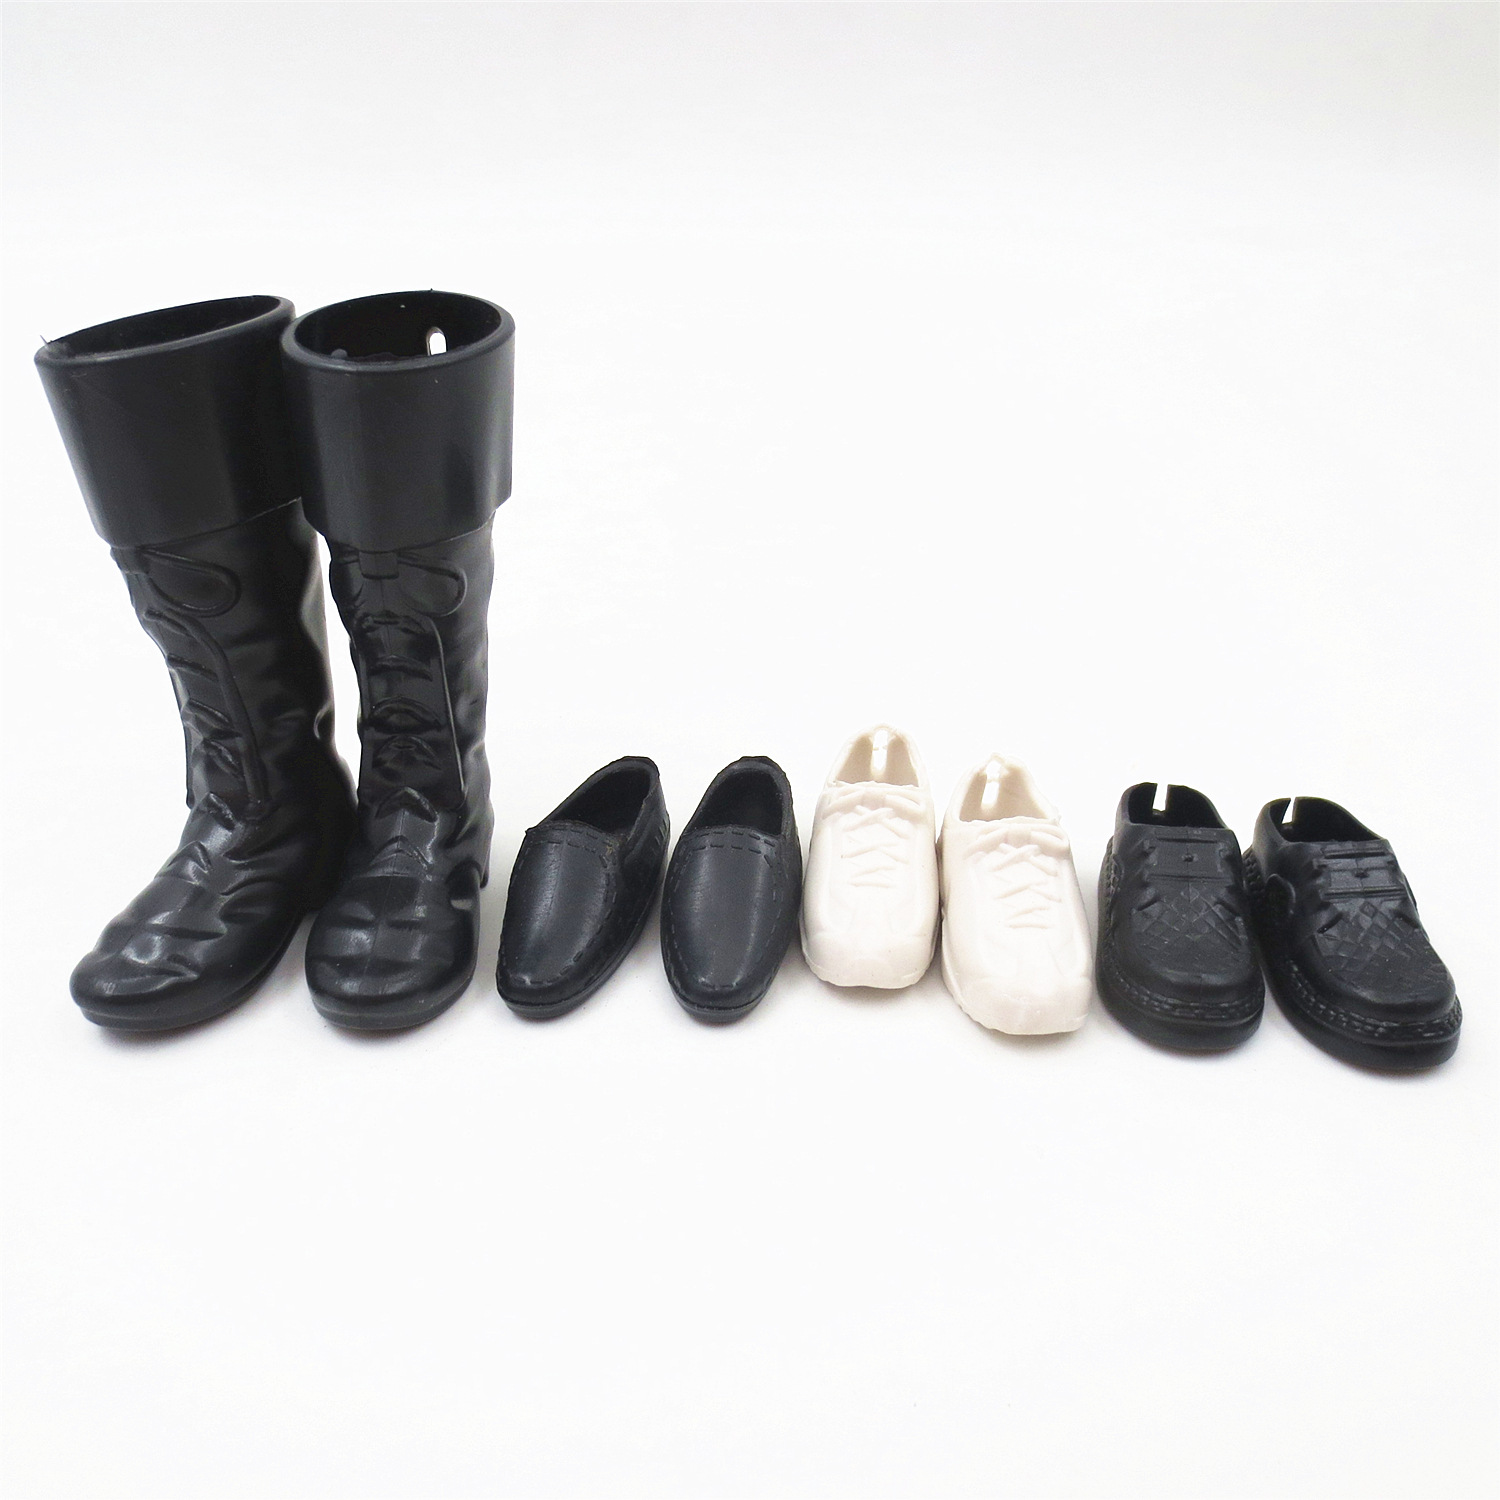 4 Pairs Boys High Boots Dress Up For Boyfriend Male Doll 30cm Doll Accessories Mini Shoes For Prince Men Doll